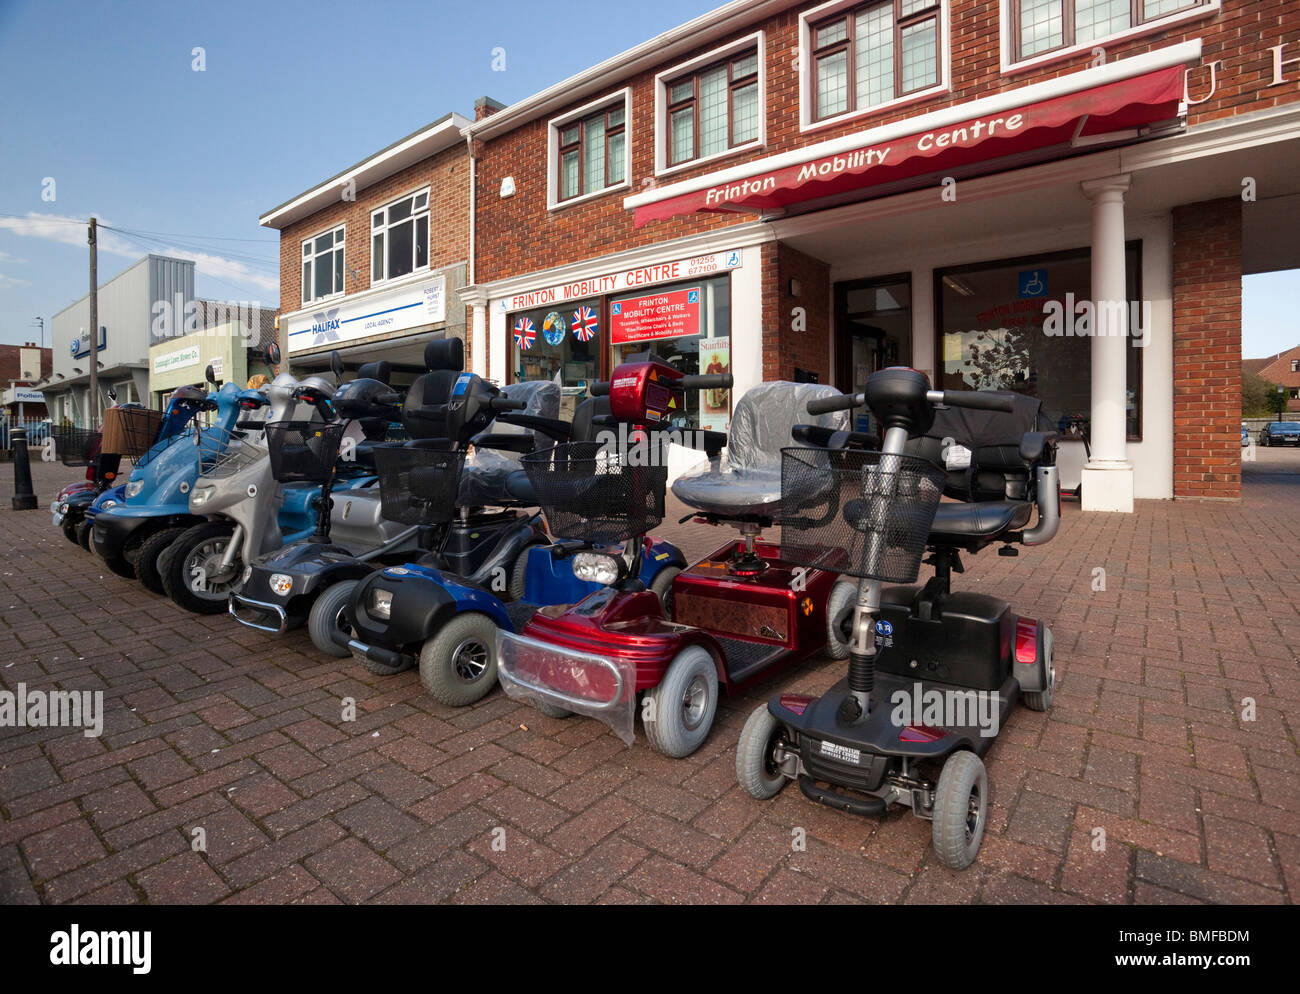 Frinton Mobility Centre supply electric mobility buggies and scooters - Stock Image